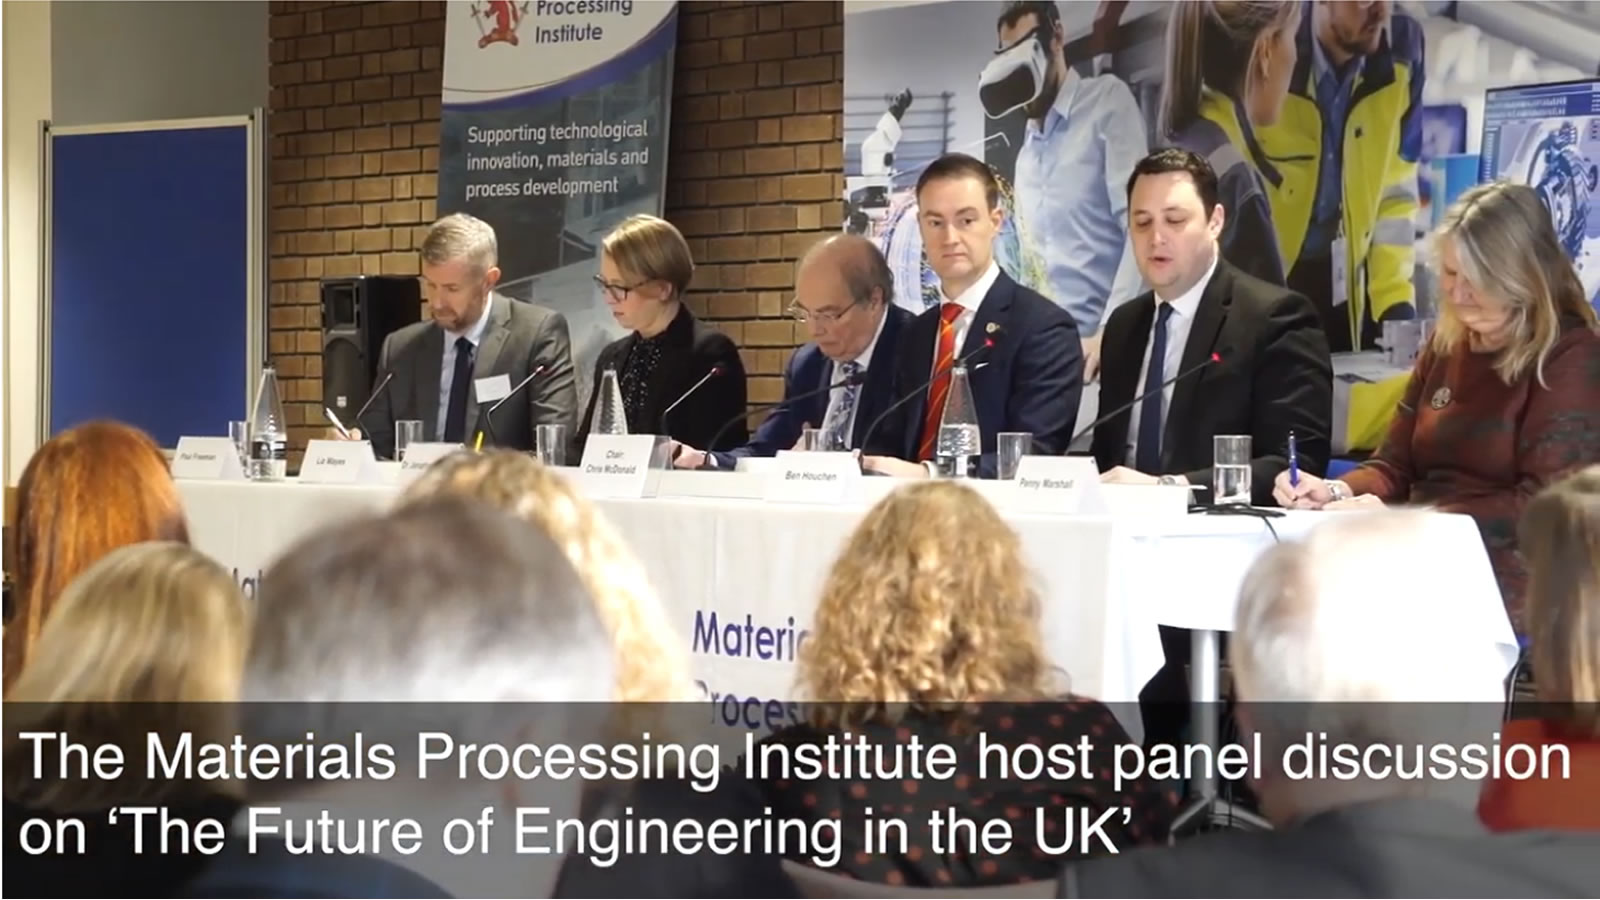 The Materials Processing Institute host panel discussion on 'The Future of Engineering in the UK' - January 2020